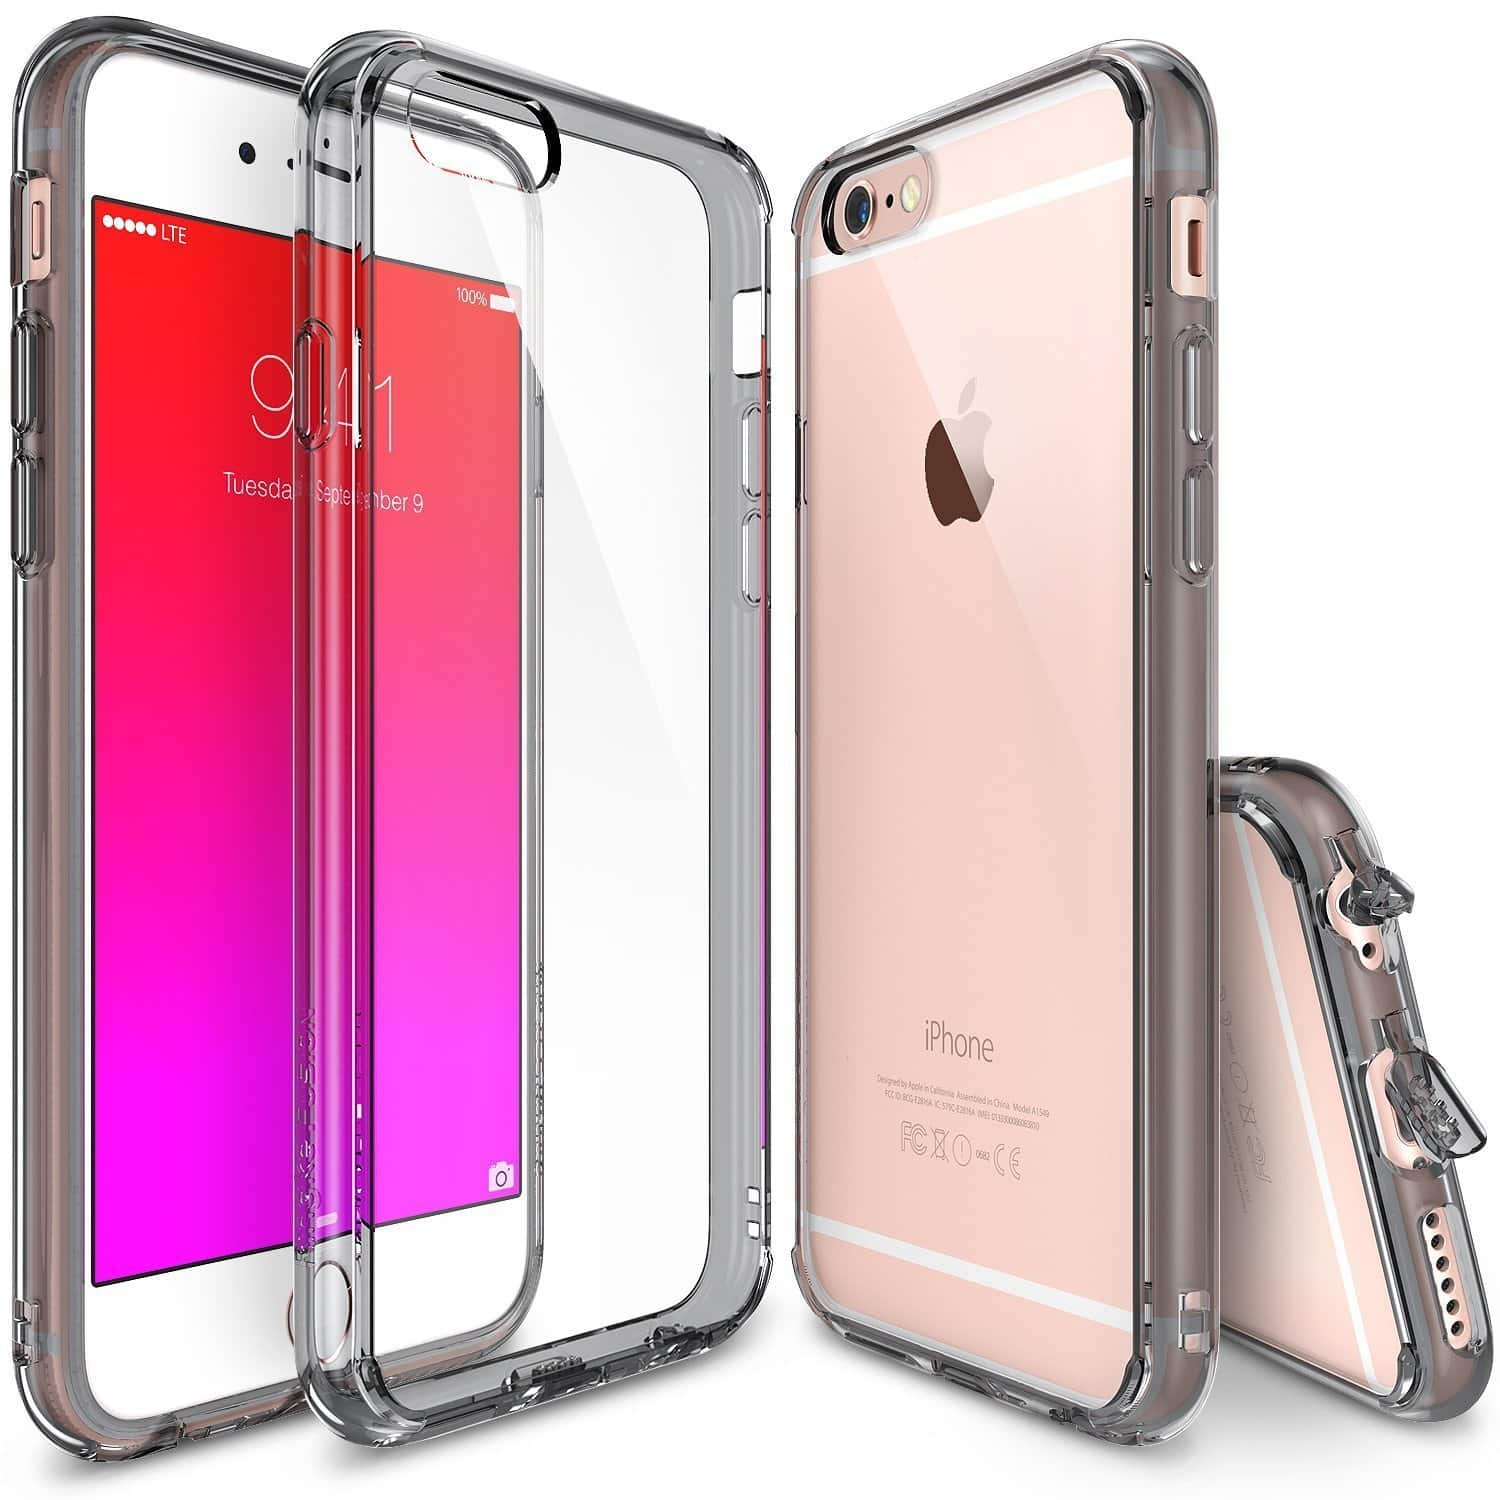 Ringke Cases: iPhone 6S/6S Plus/SE, Galaxy S7/S7 Edge & More  $4.50 + Free Shipping